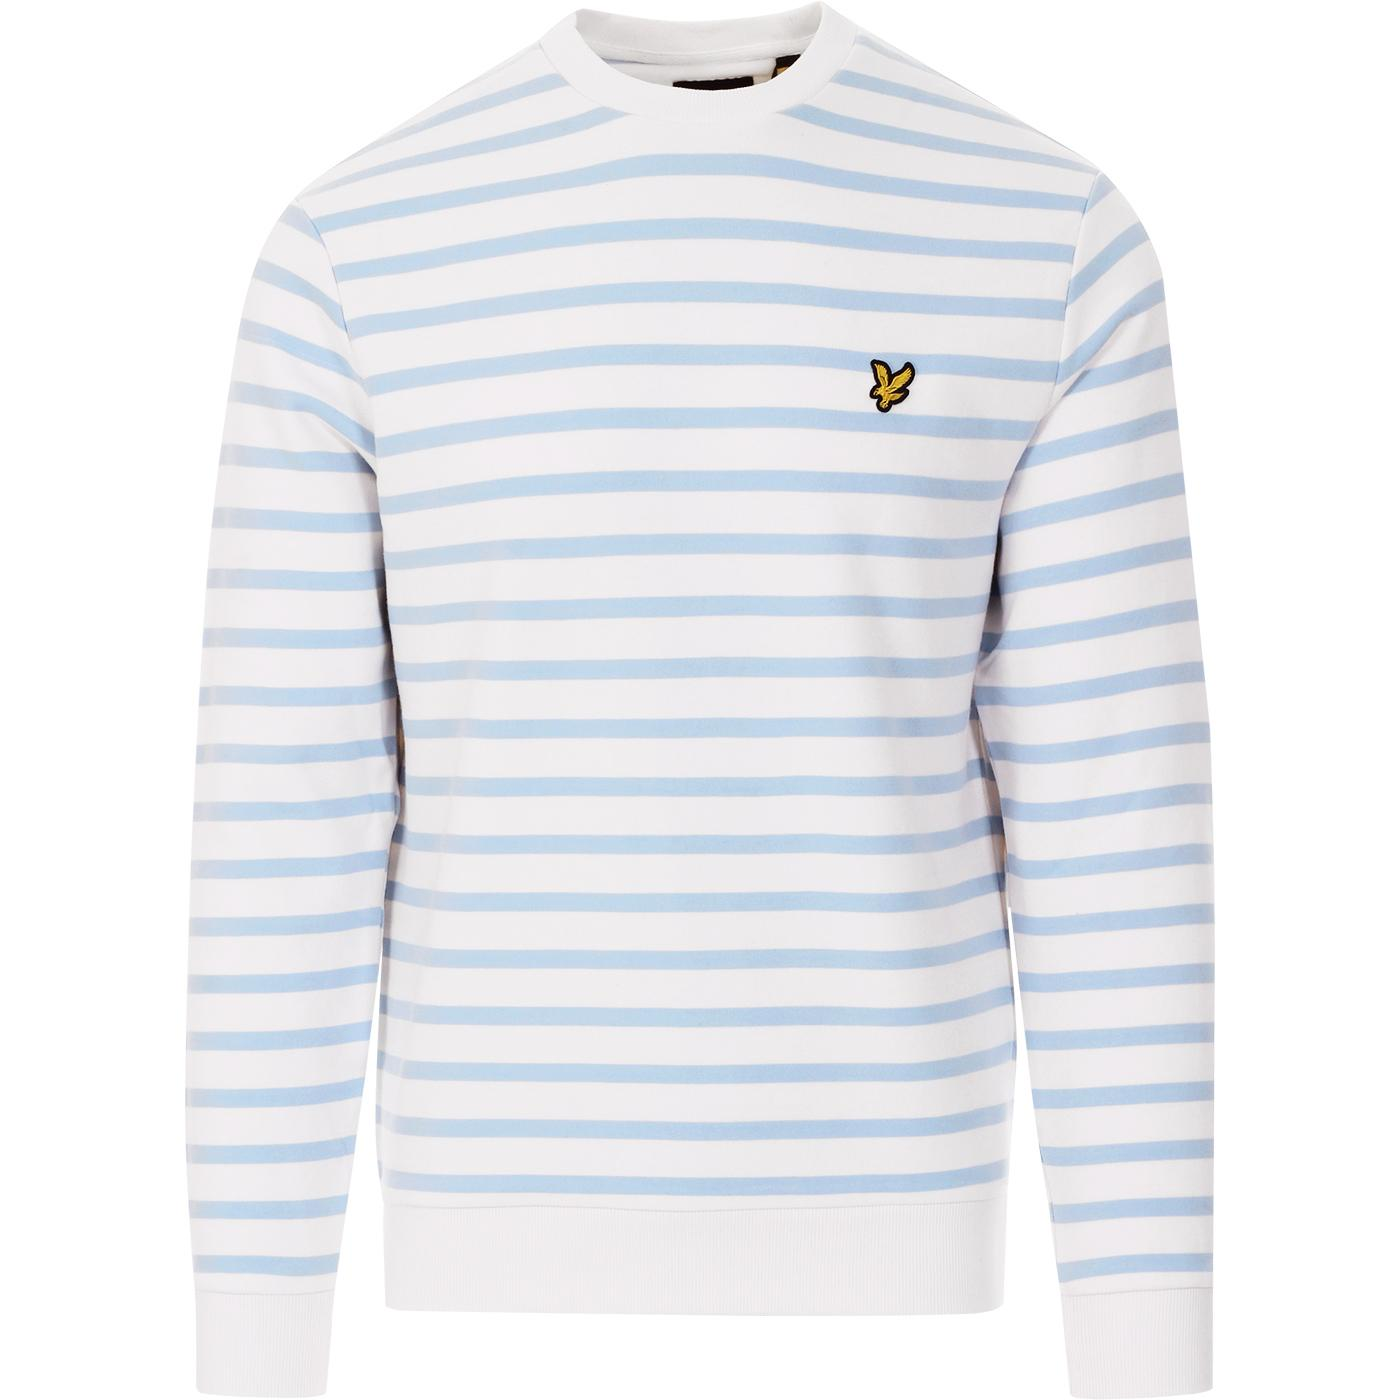 LYLE & SCOTT Retro Mod Breton Stripe Sweatshirt PW